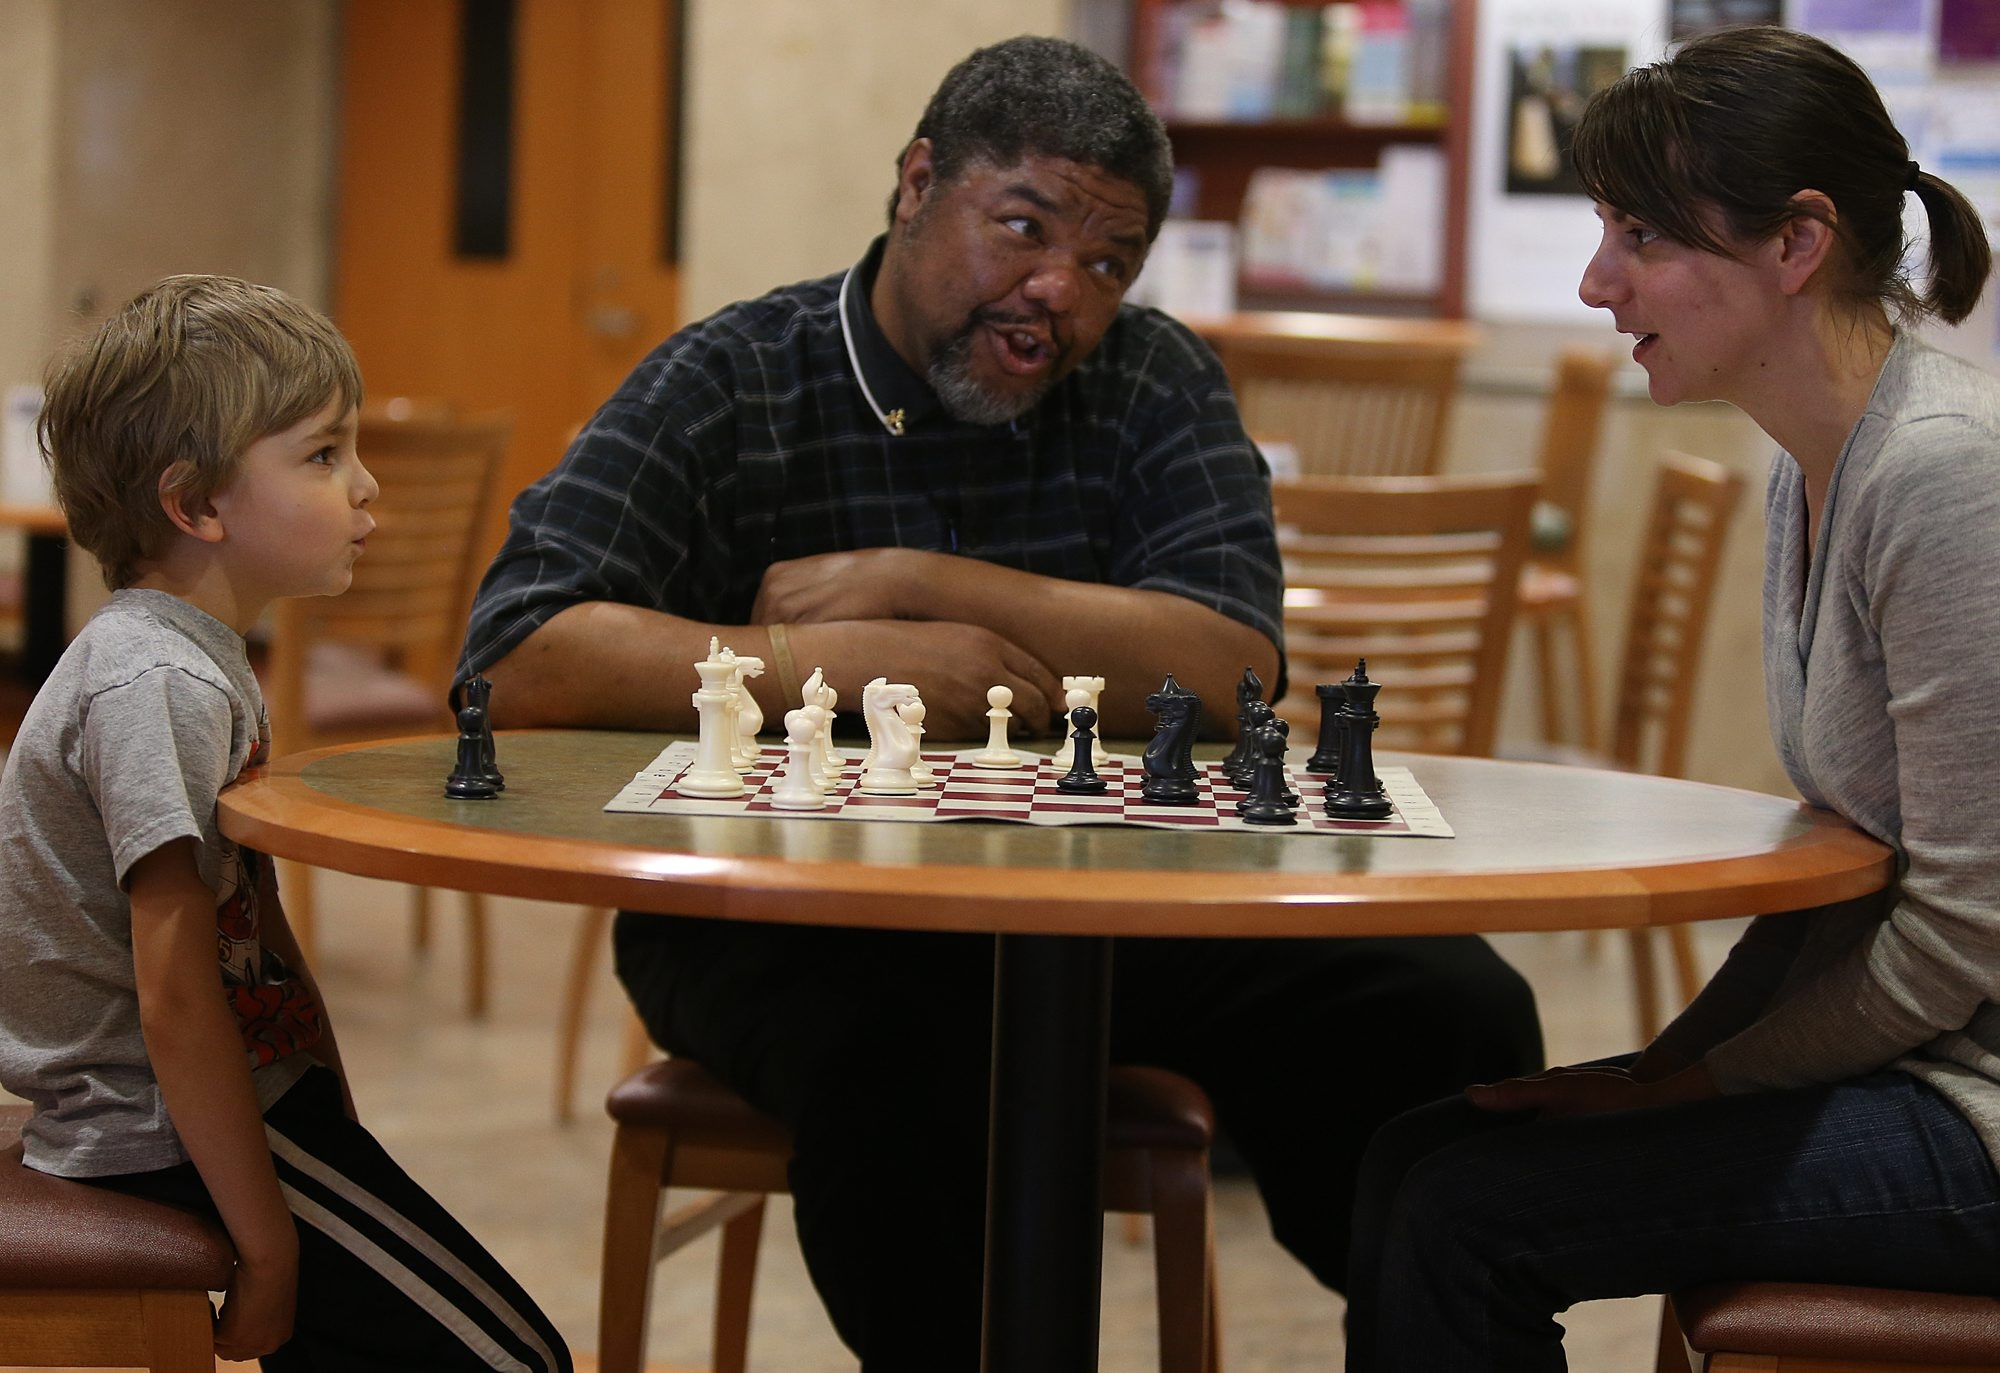 Michael A. McDuffie, of the Archangel 8 Chess Academy in Buffalo, center, gives advice to Jen Mattimore, right, of Buffalo, and her son Waylon at a chess open house earlier this year at the Central Library. The next open house is from noon to 4:30 p.m. Sunday.